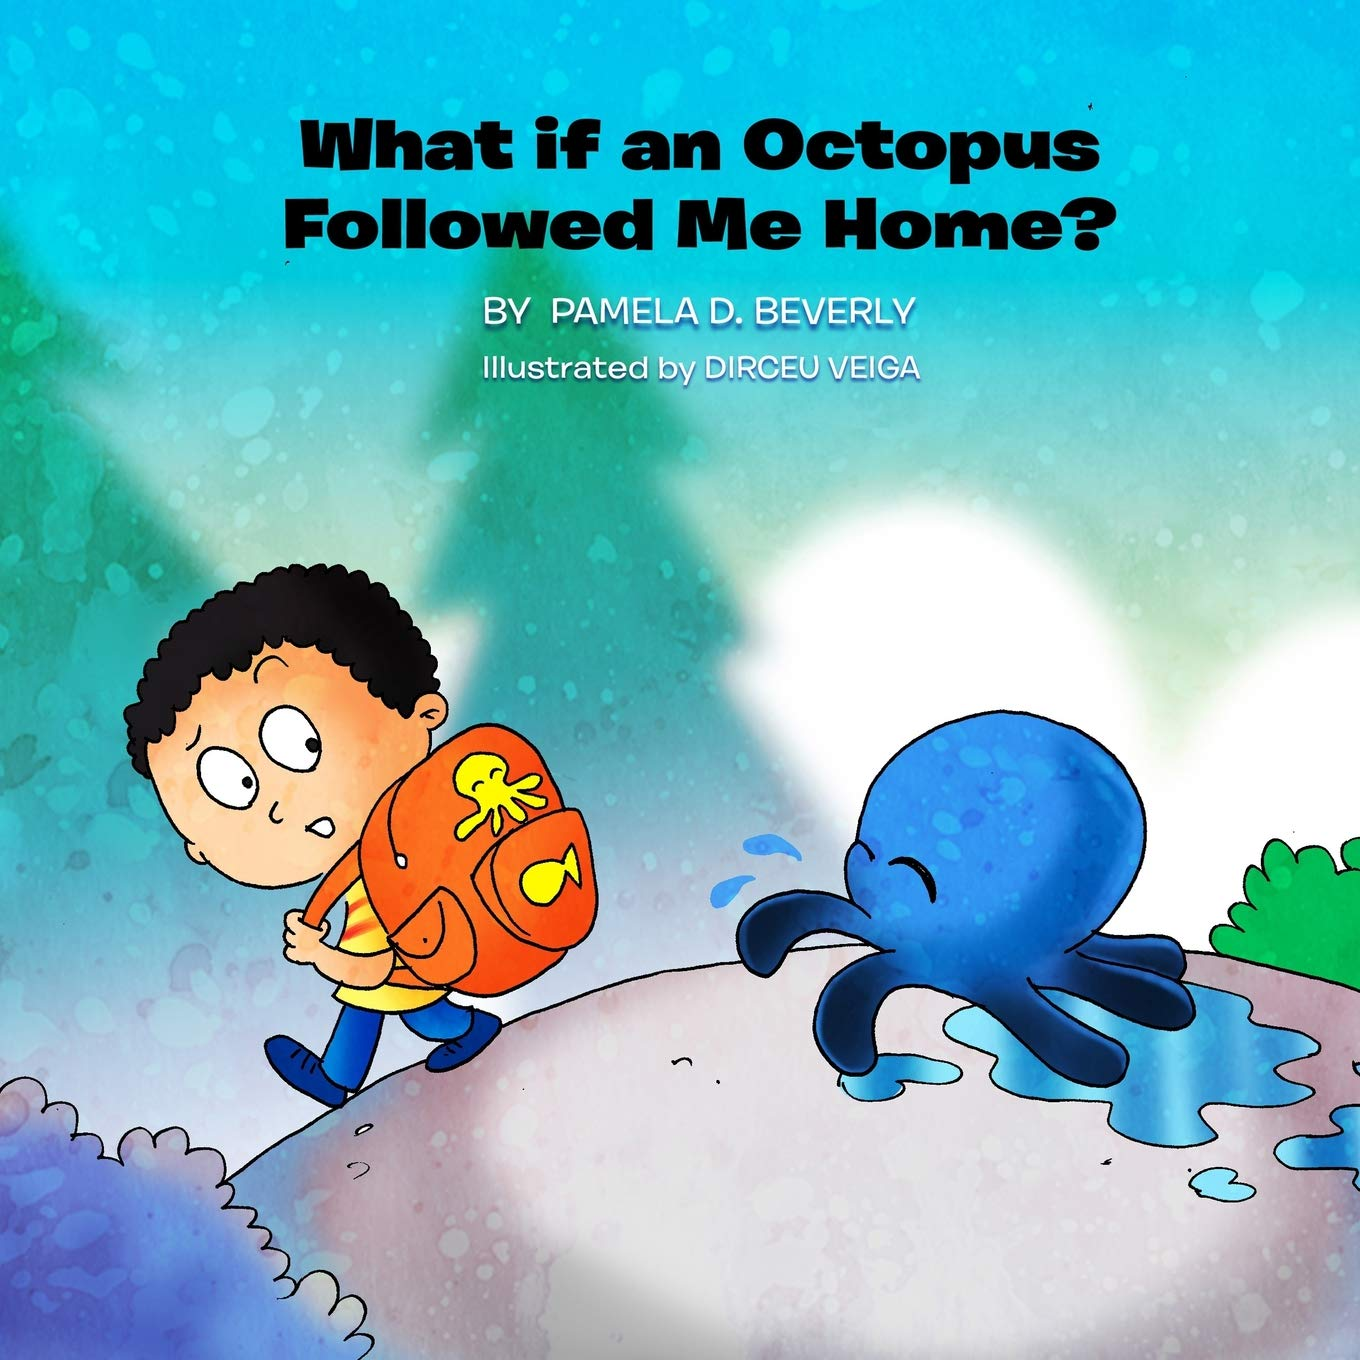 What if an Octopus Followed Me Home.jpg